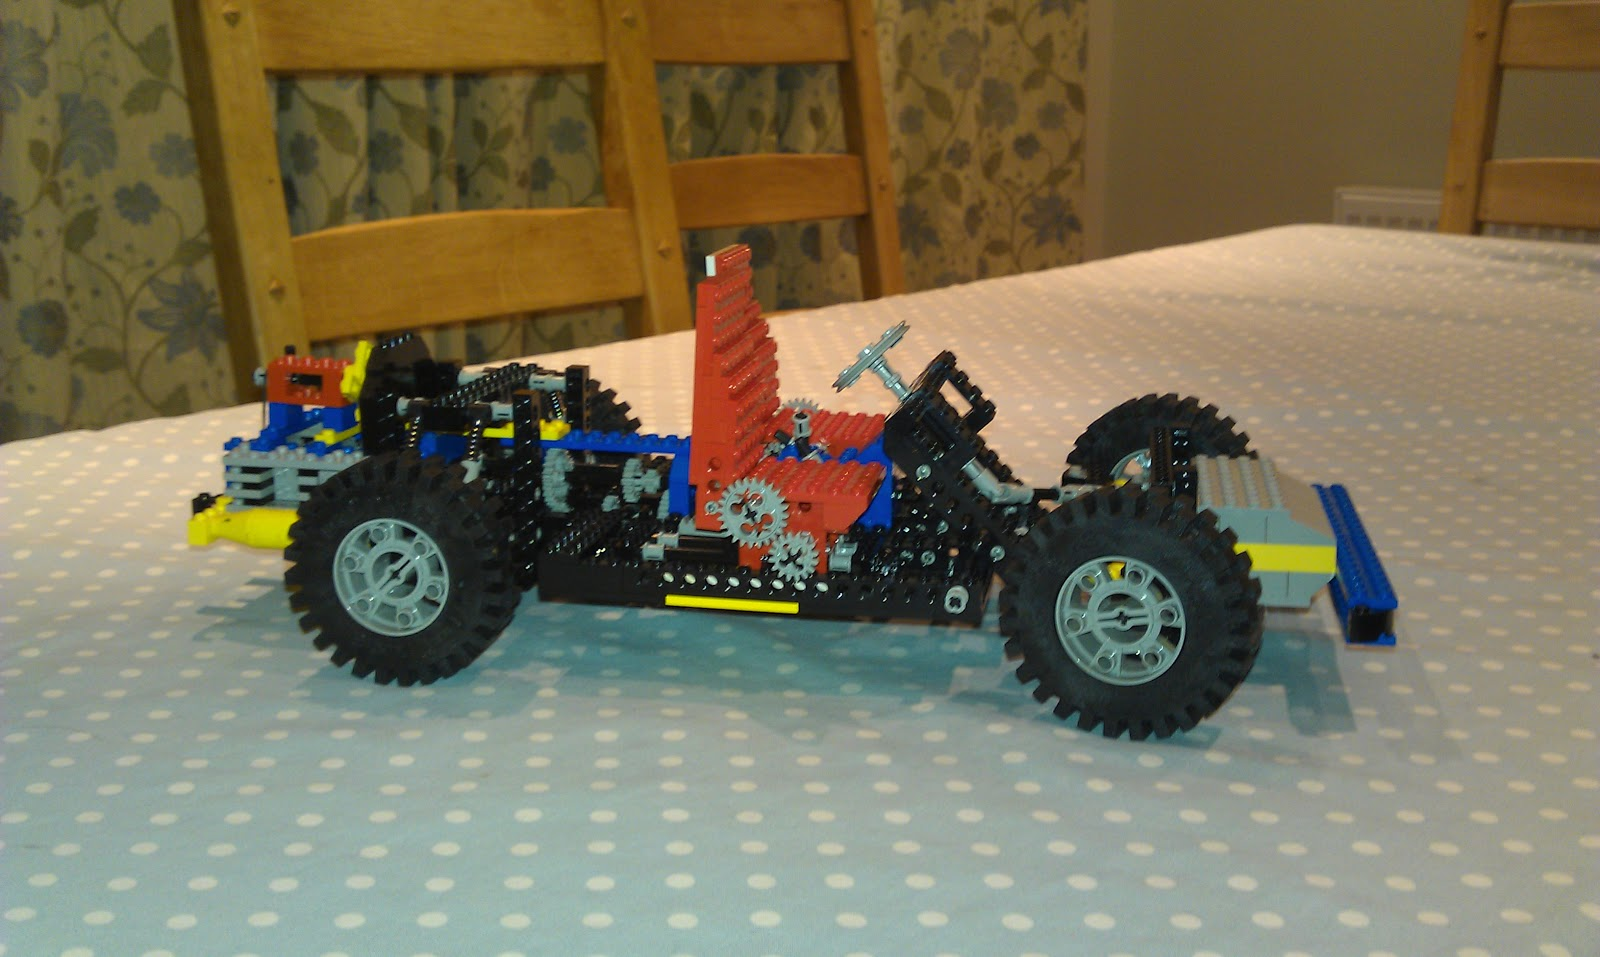 paul 39 s geek dad blog raspberry pi powered lego car. Black Bedroom Furniture Sets. Home Design Ideas